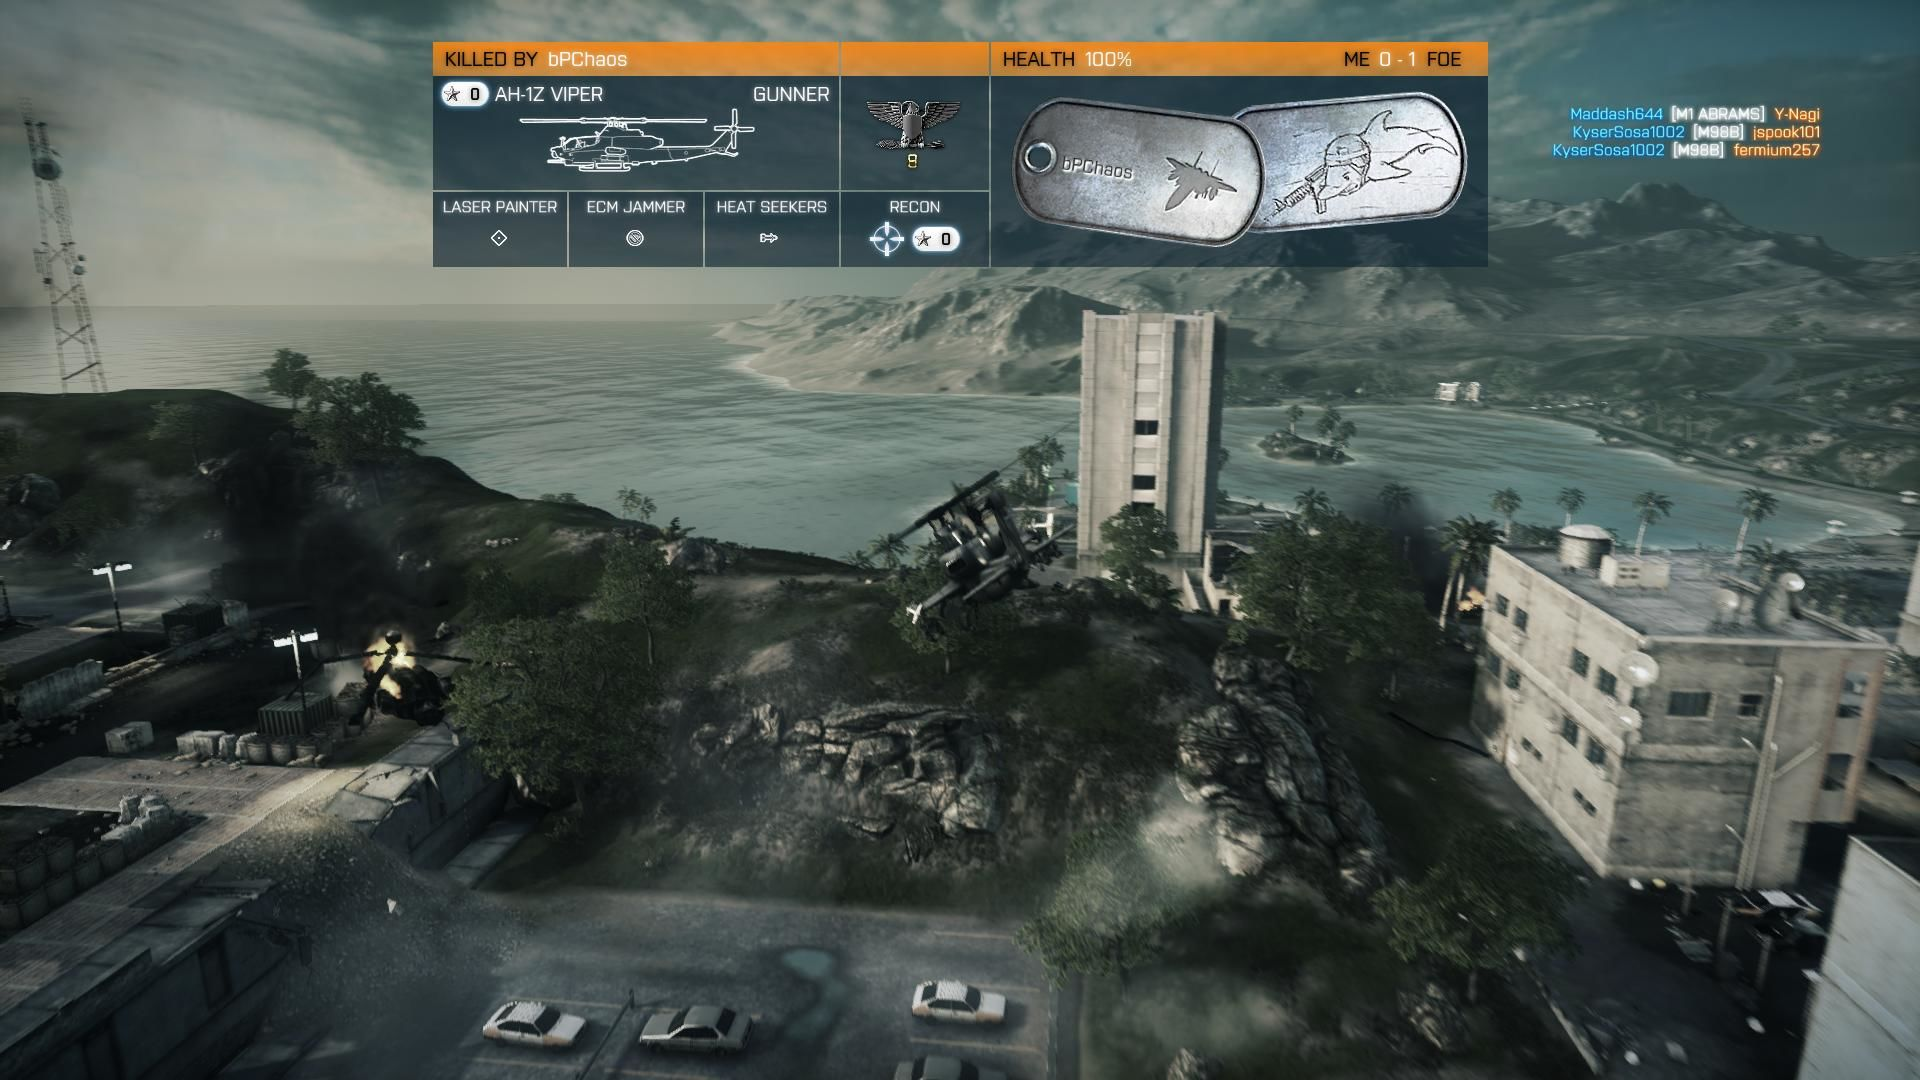 Battlefield 3: Back to Karkand Windows Killcam shows the AH-1Z attack chopper